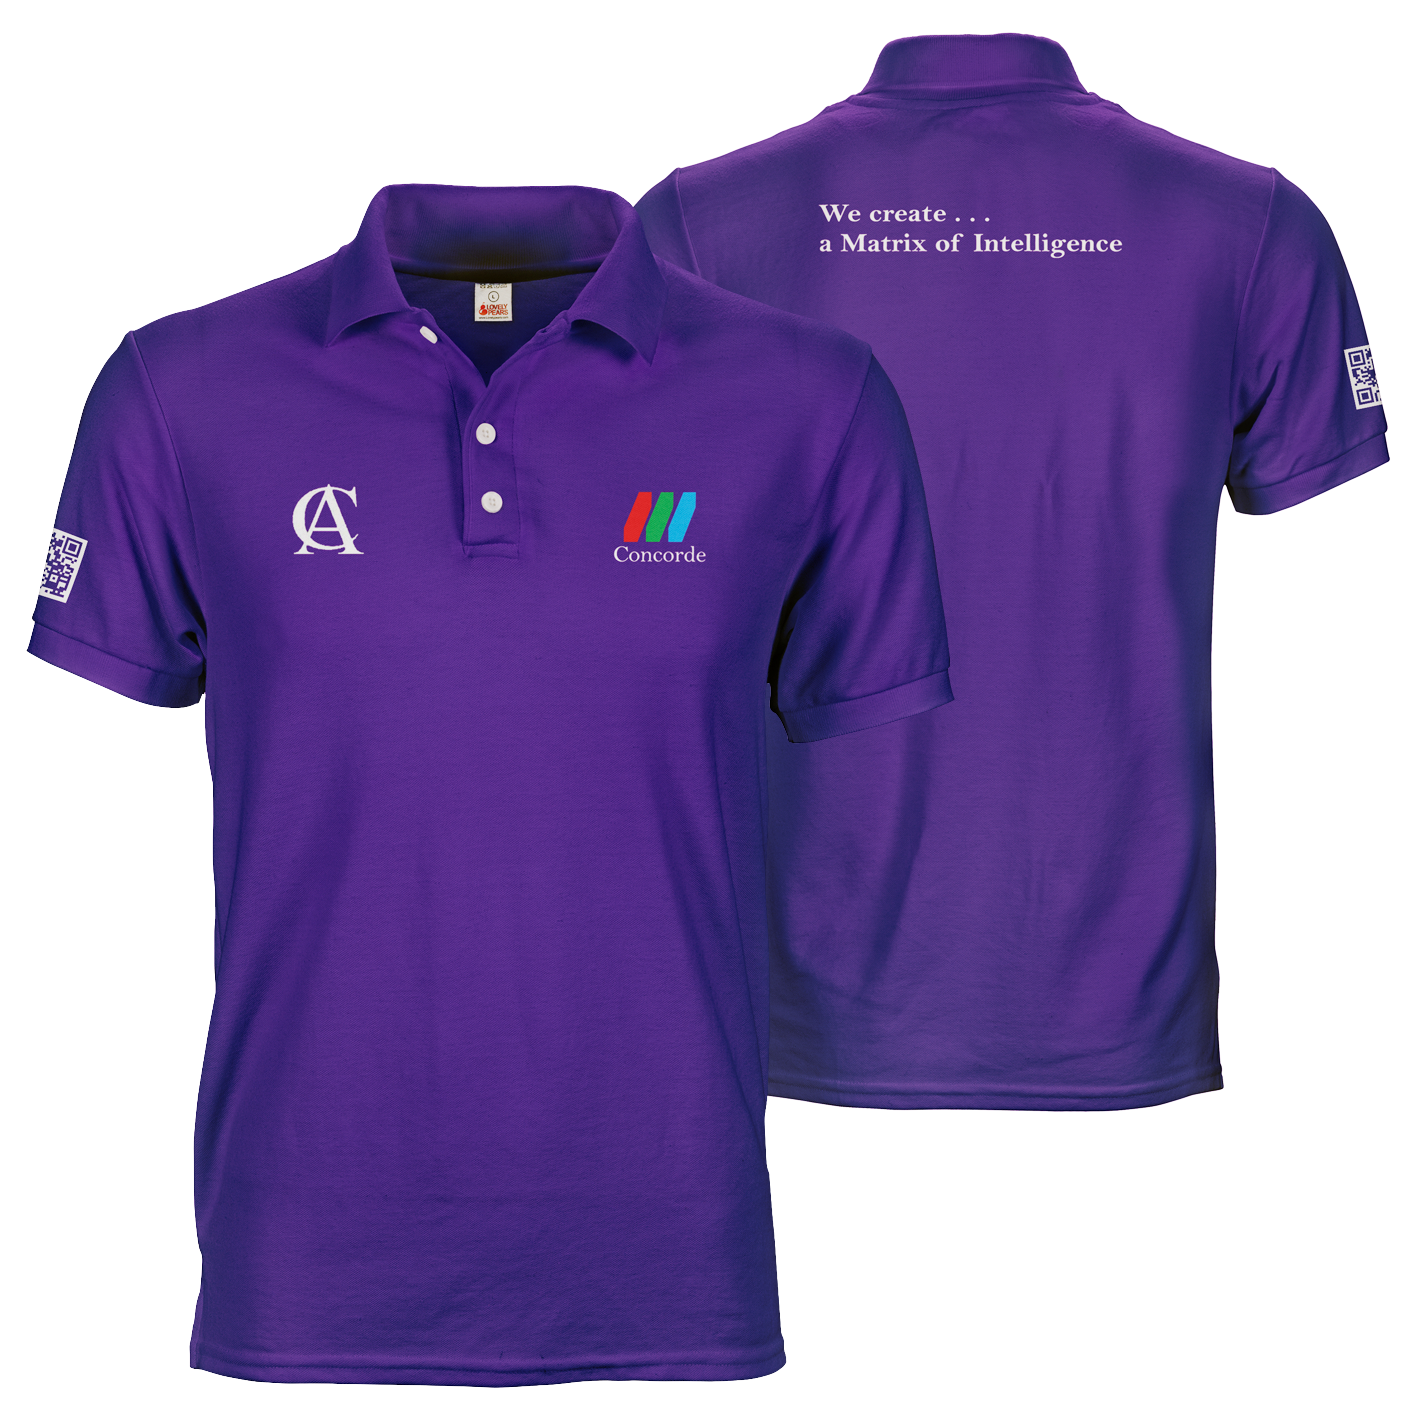 Purple CCTV Concorde polo tee shirt with A6 logo prints on front and sleeve and A4 motto print on back